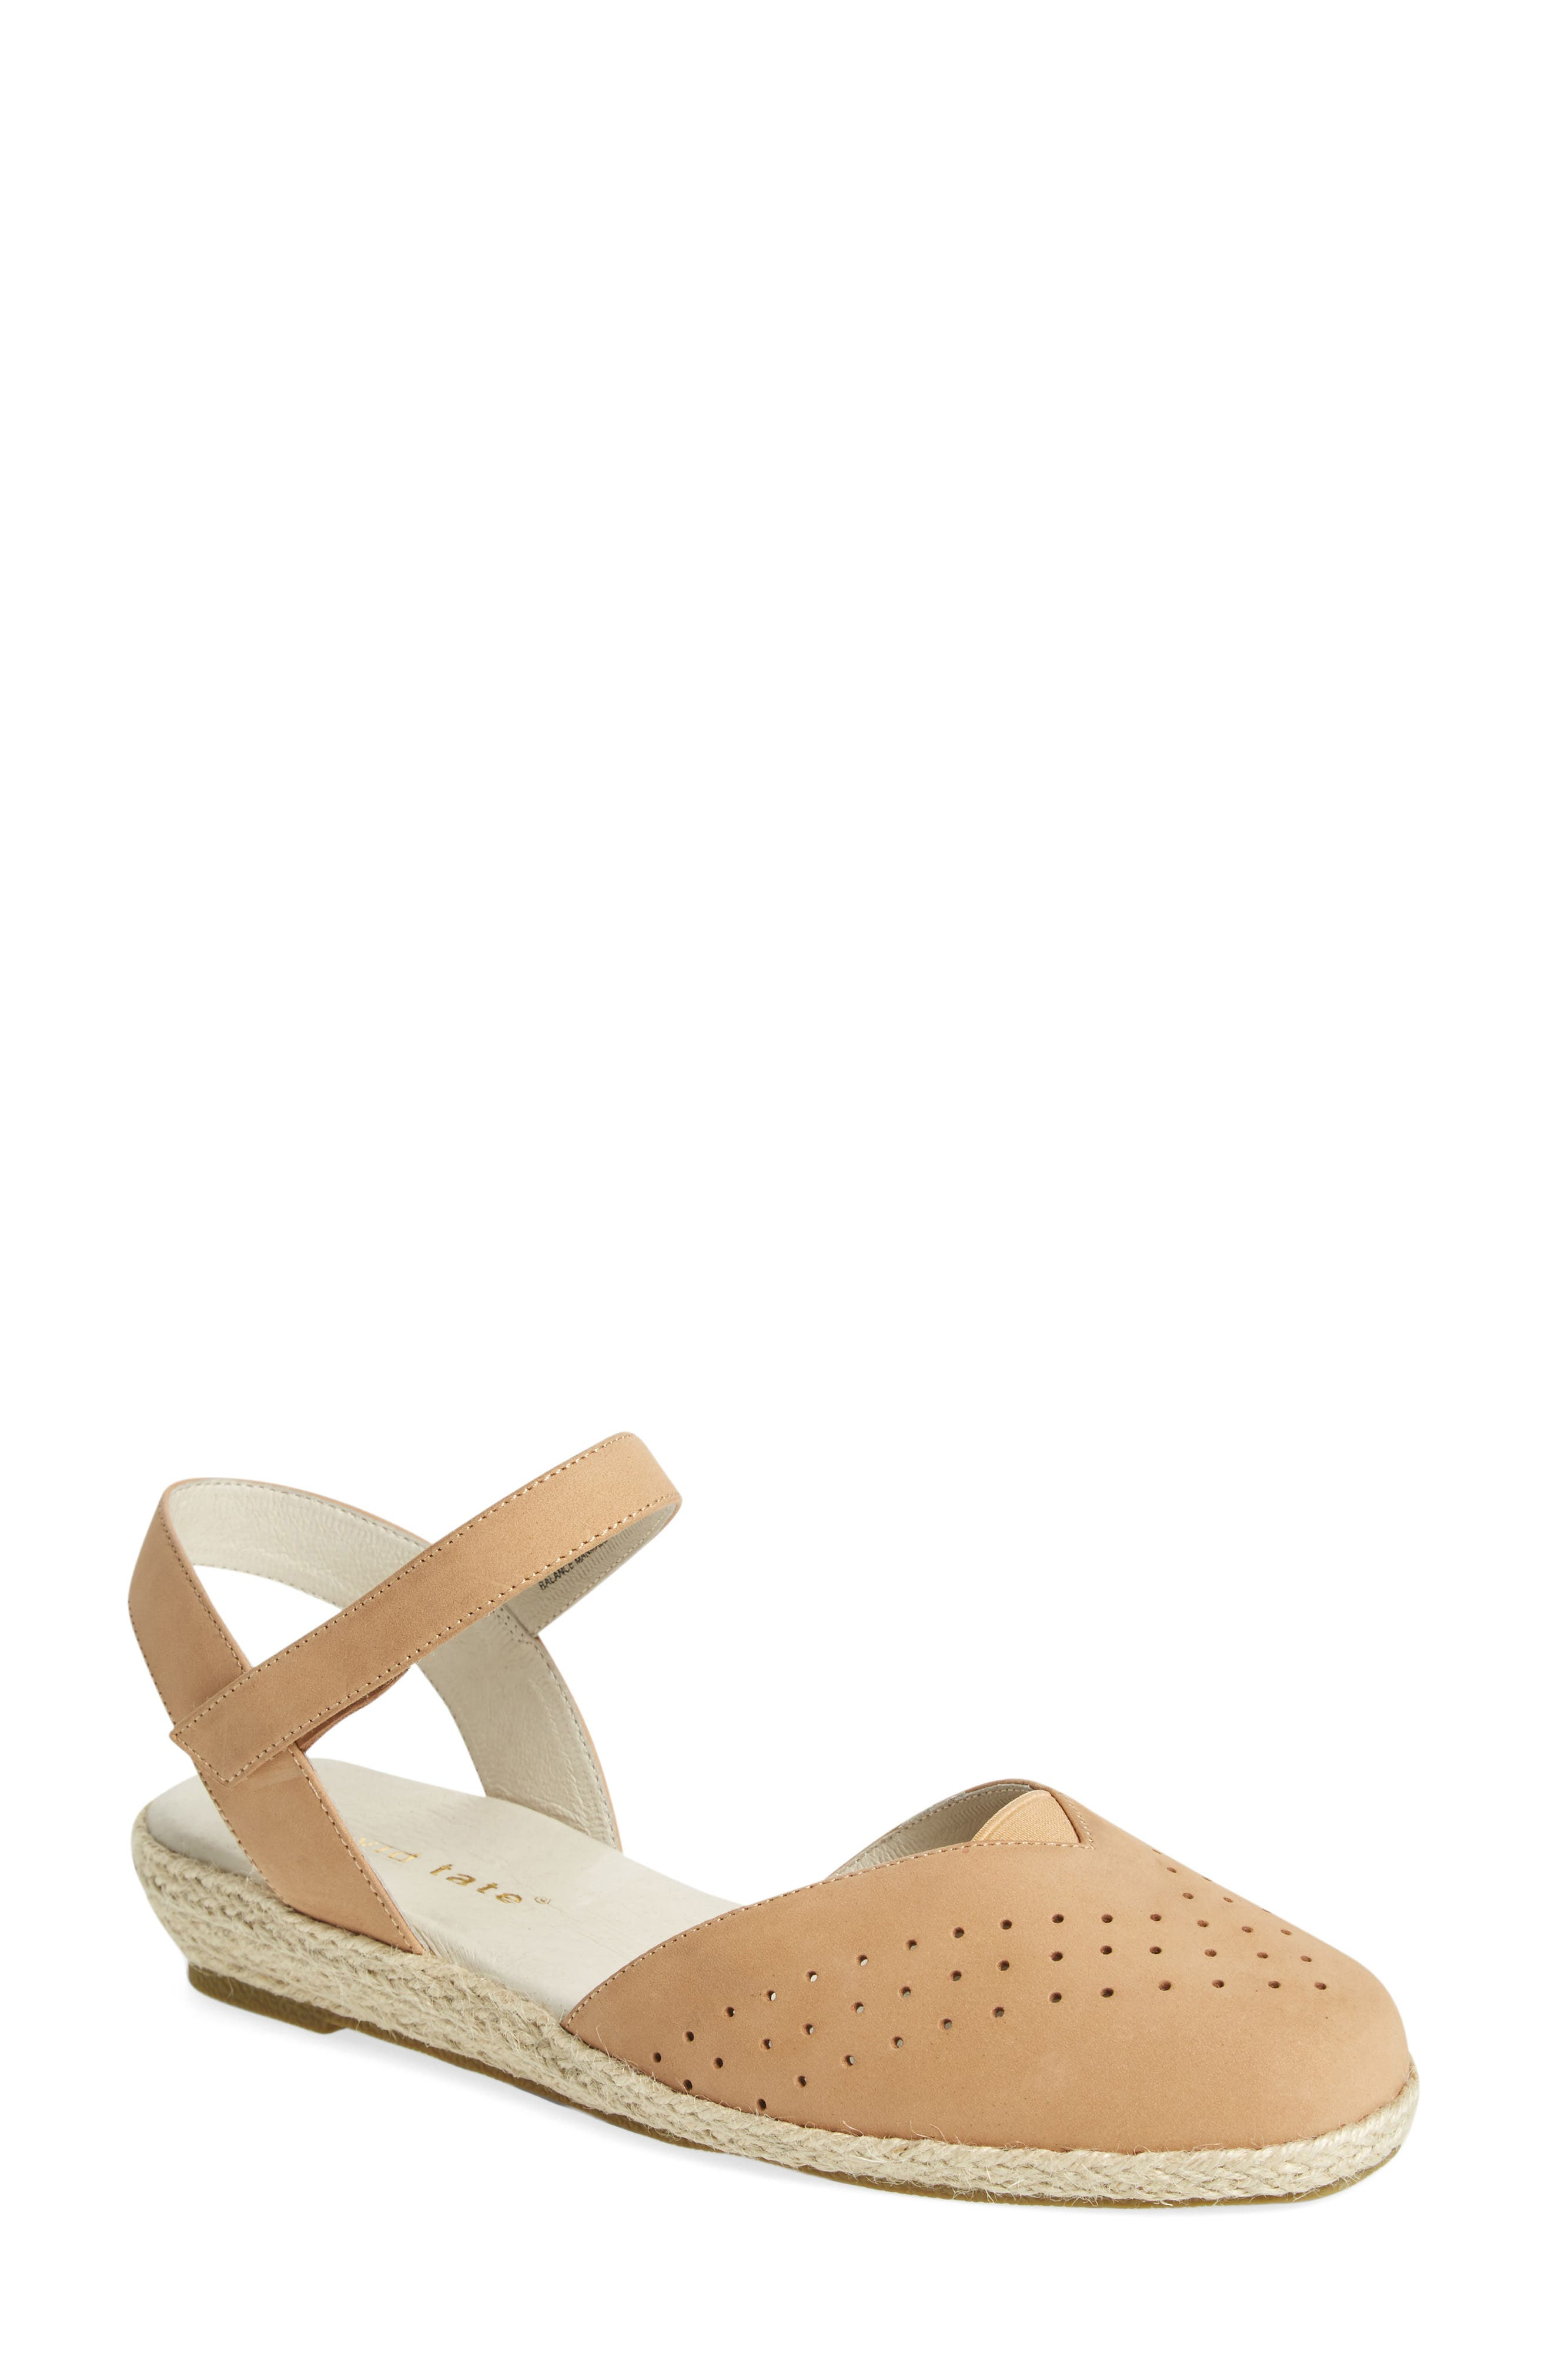 David Tate Canyon Espadrille Sandal (Women)